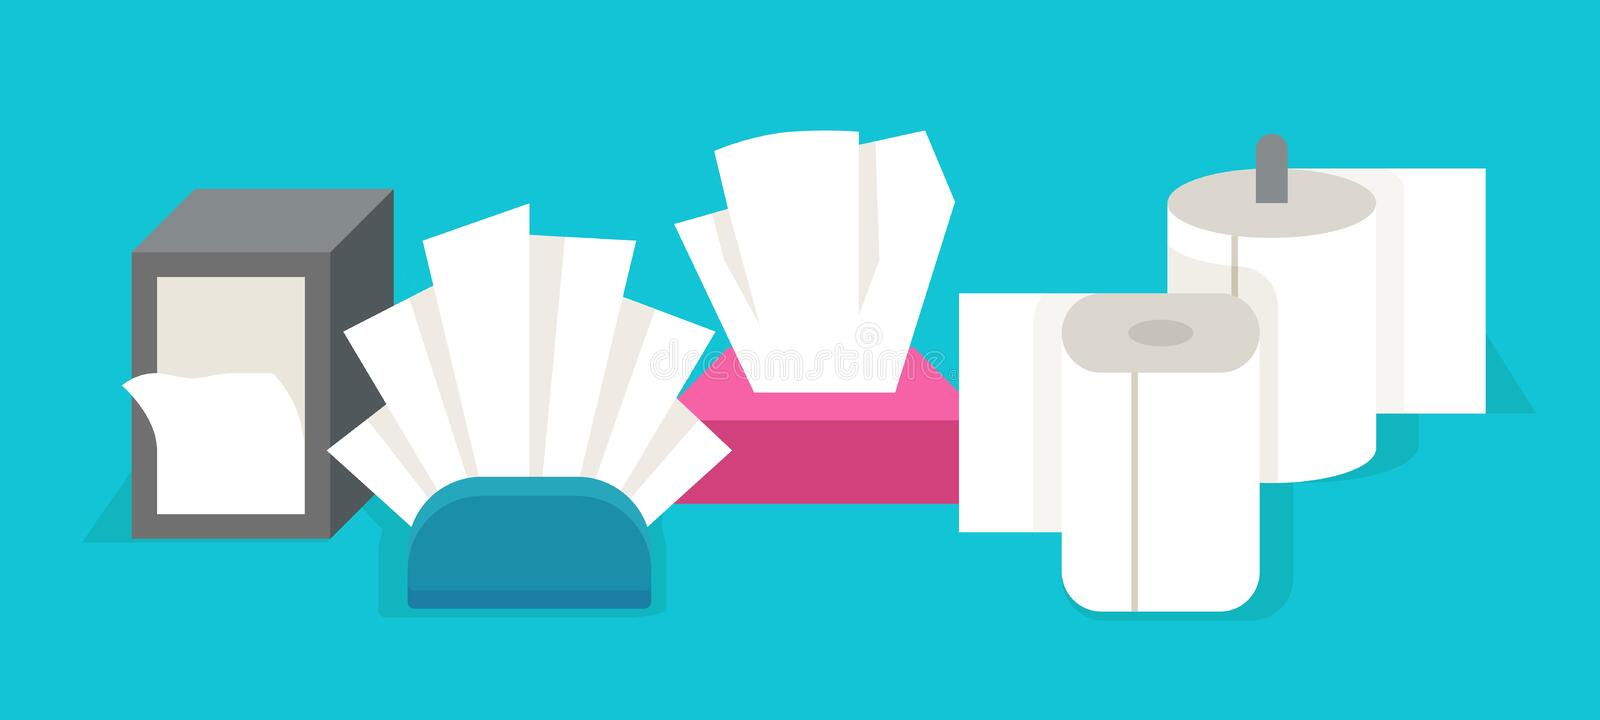 Cartoon tissue. Flat rolled paper napkins and hand dryer, toilet paper and hand dryer tissues. Vector napkins boxes and stock illustration